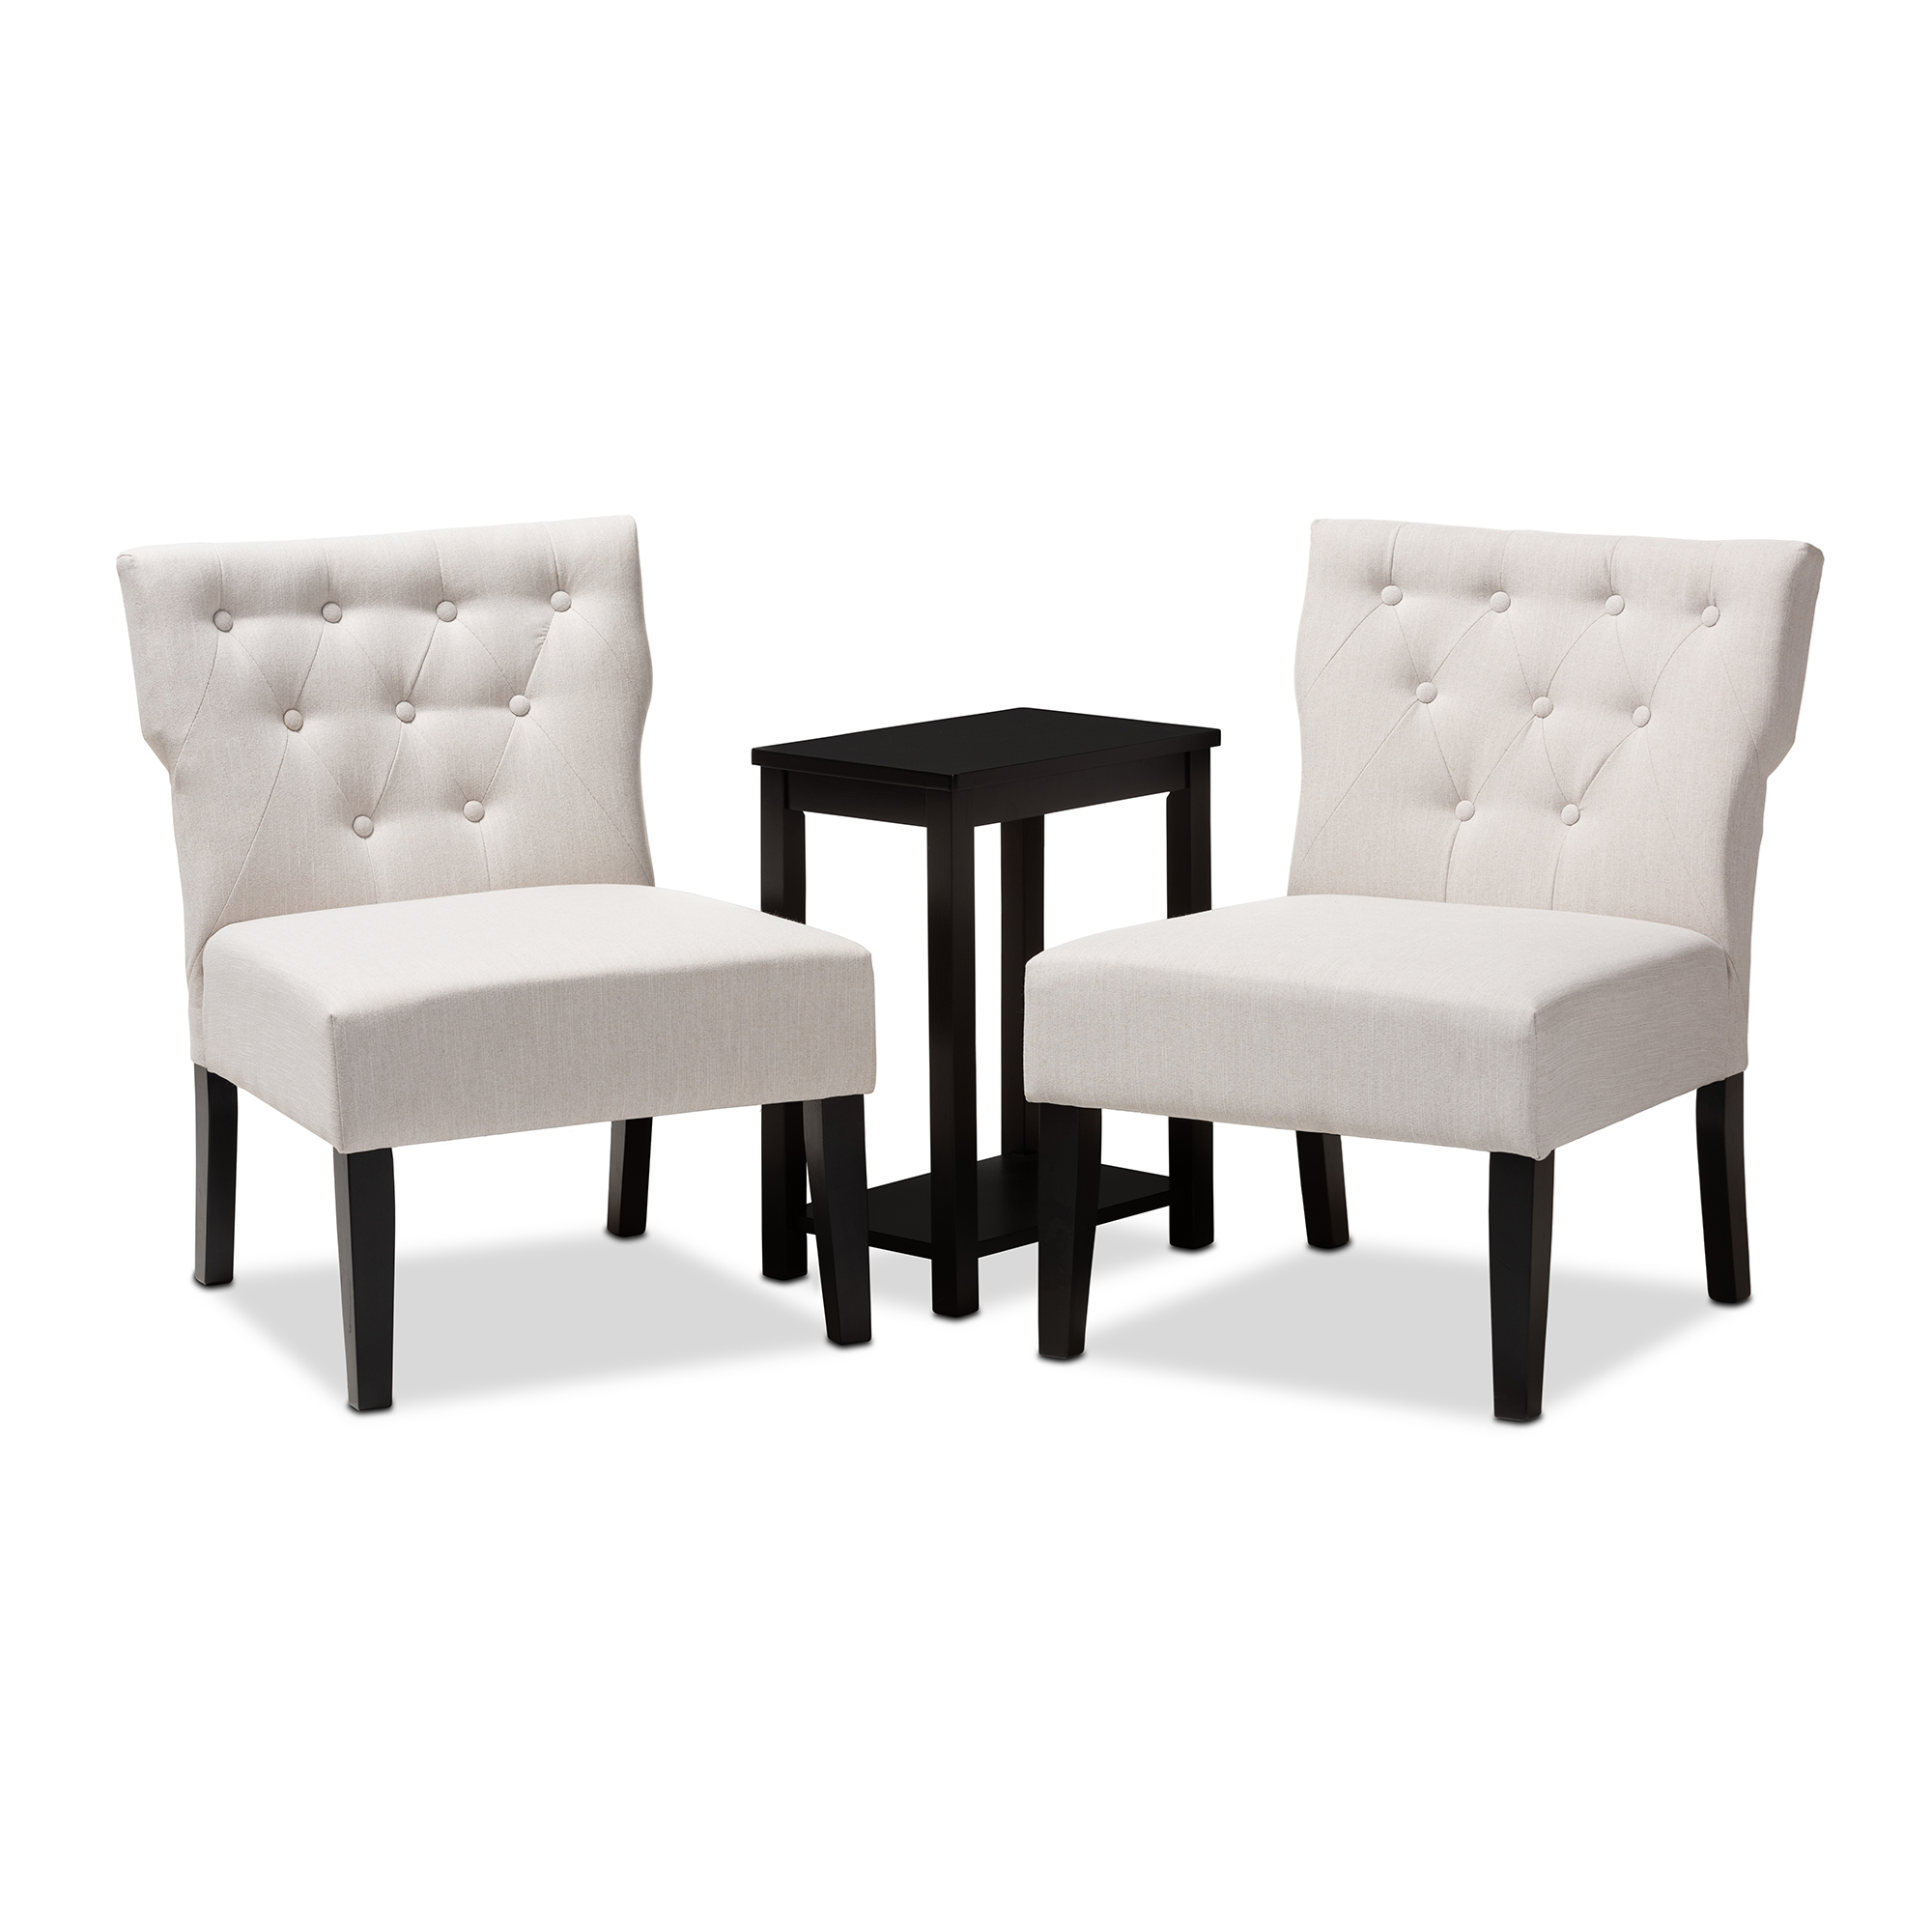 baxton studio lerato transitional piece beige fabric upholstered accent chair and table set black finished wood threshold transition garden furniture pieces for family room round